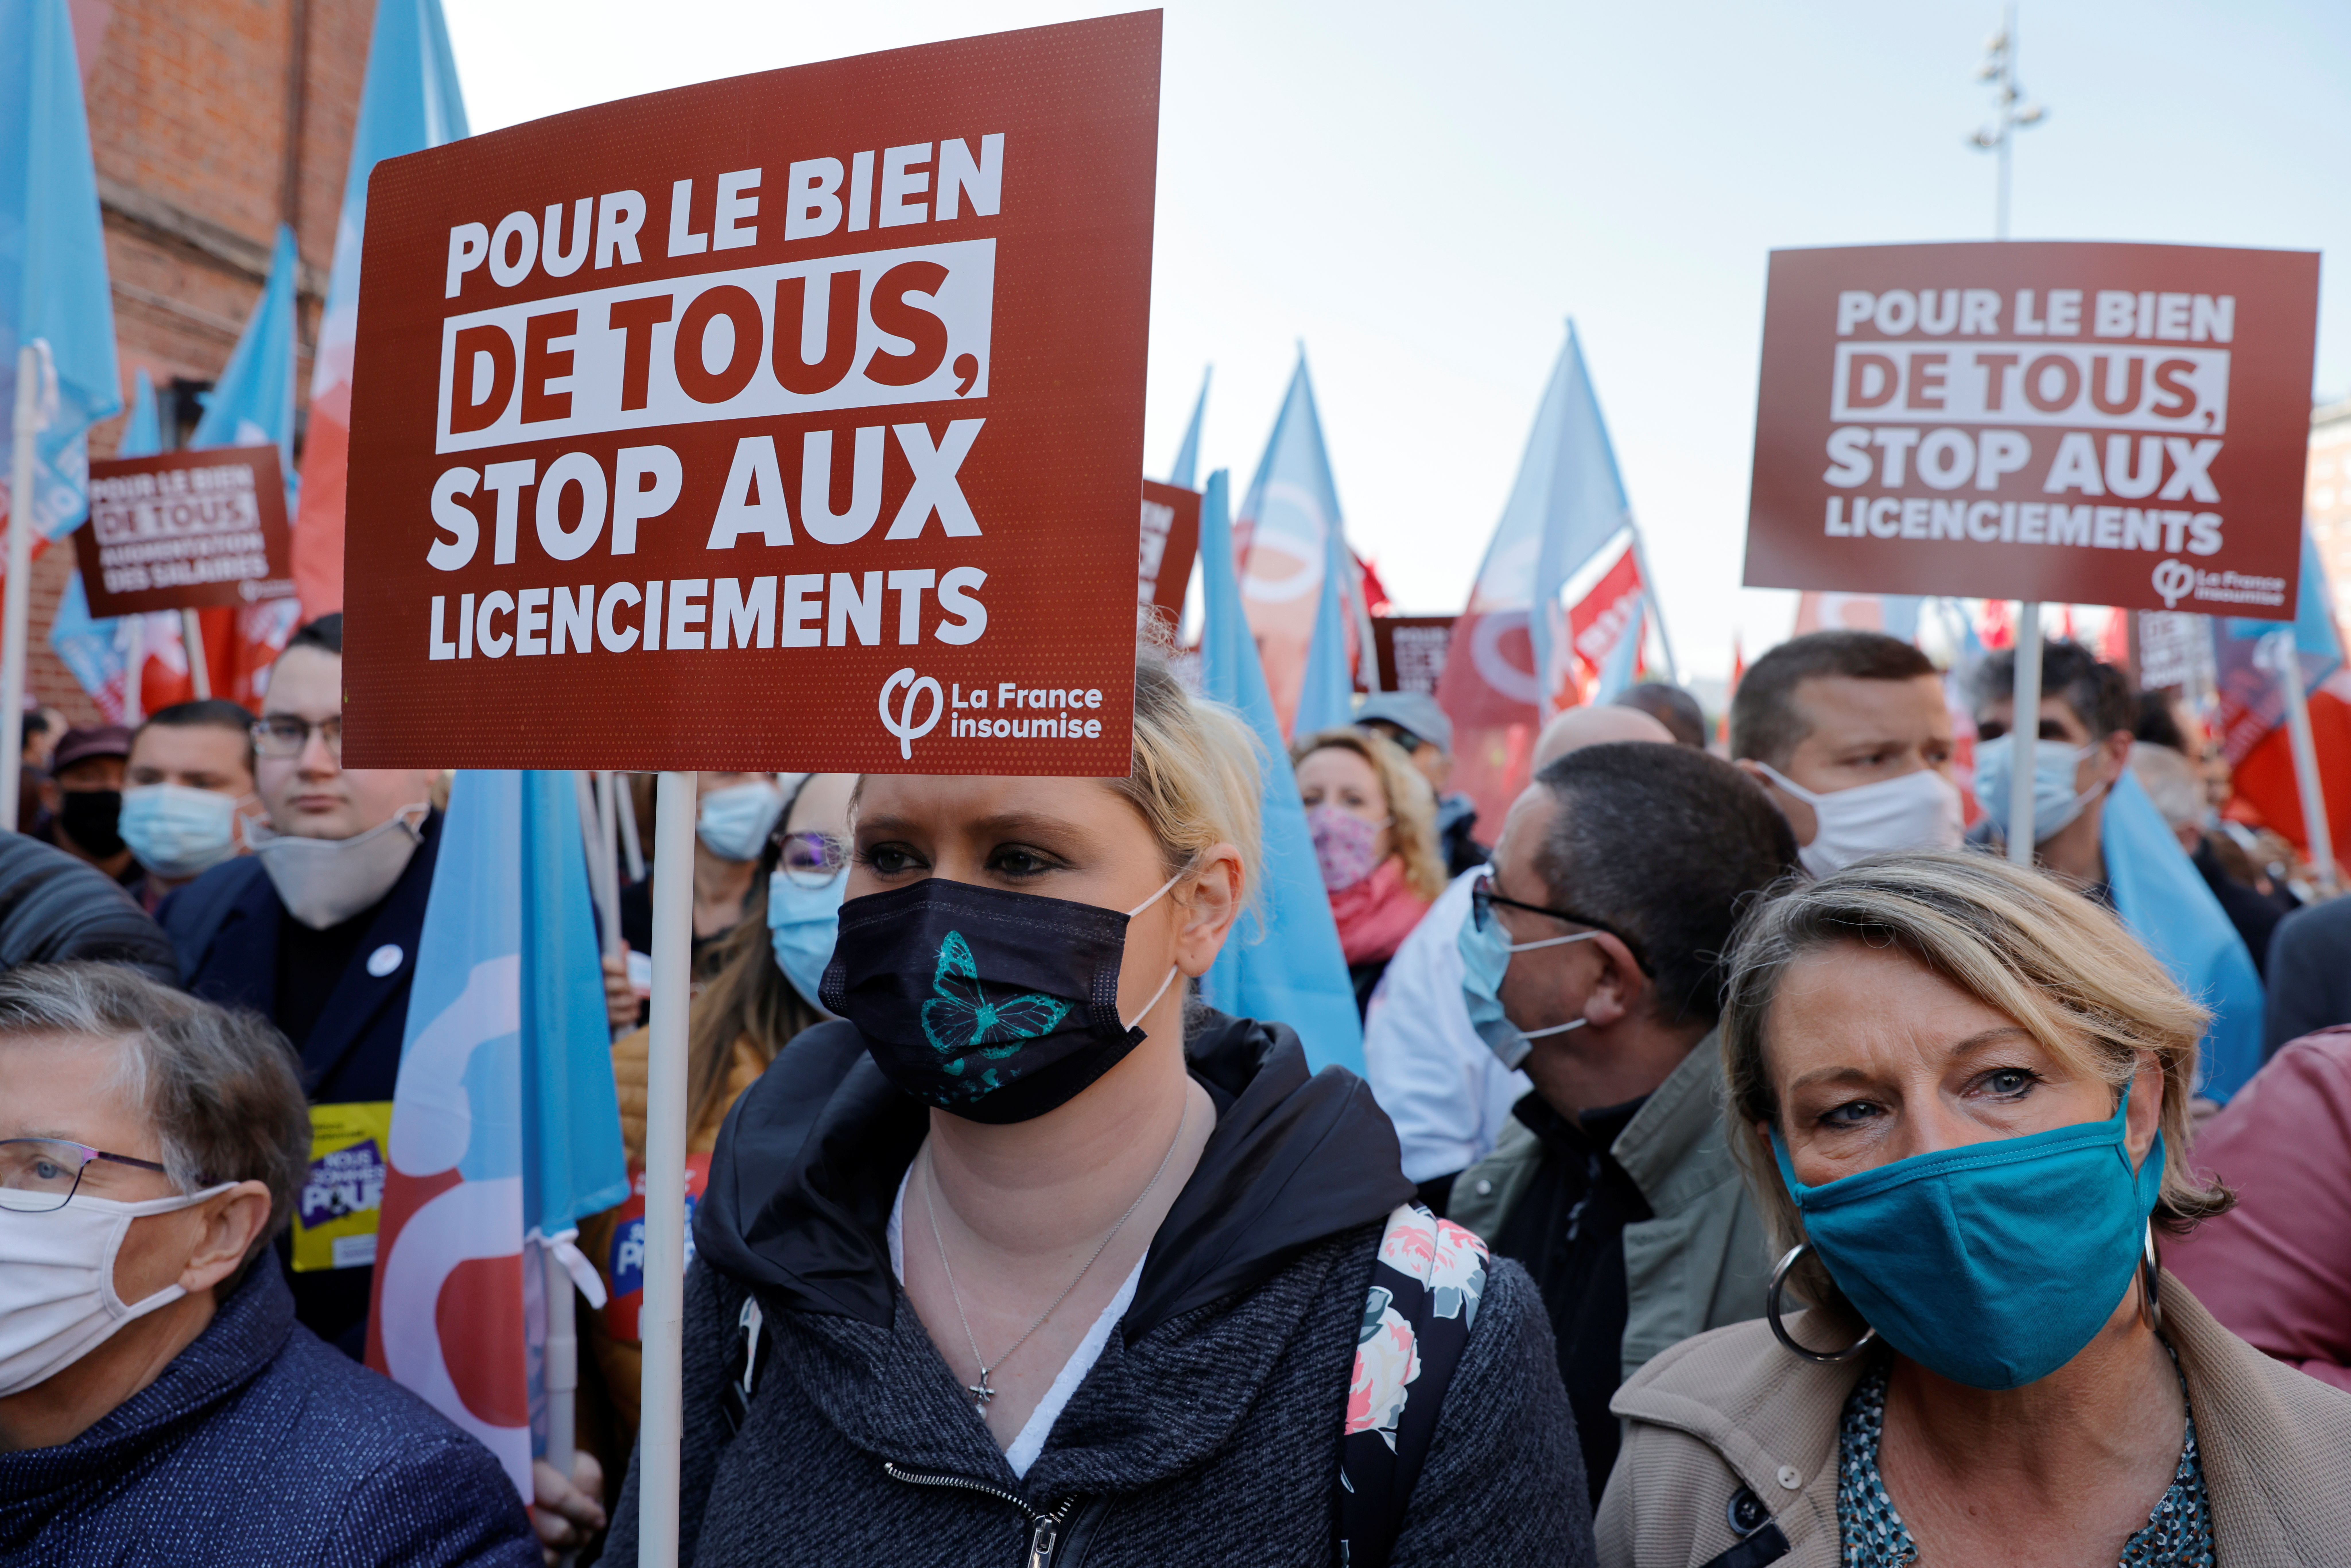 People holding placards attend the traditional May Day labour union march, amid the coronavirus disease (COVID-19) outbreak in Lille, France, May 1, 2021. REUTERS/Pascal Rossignol